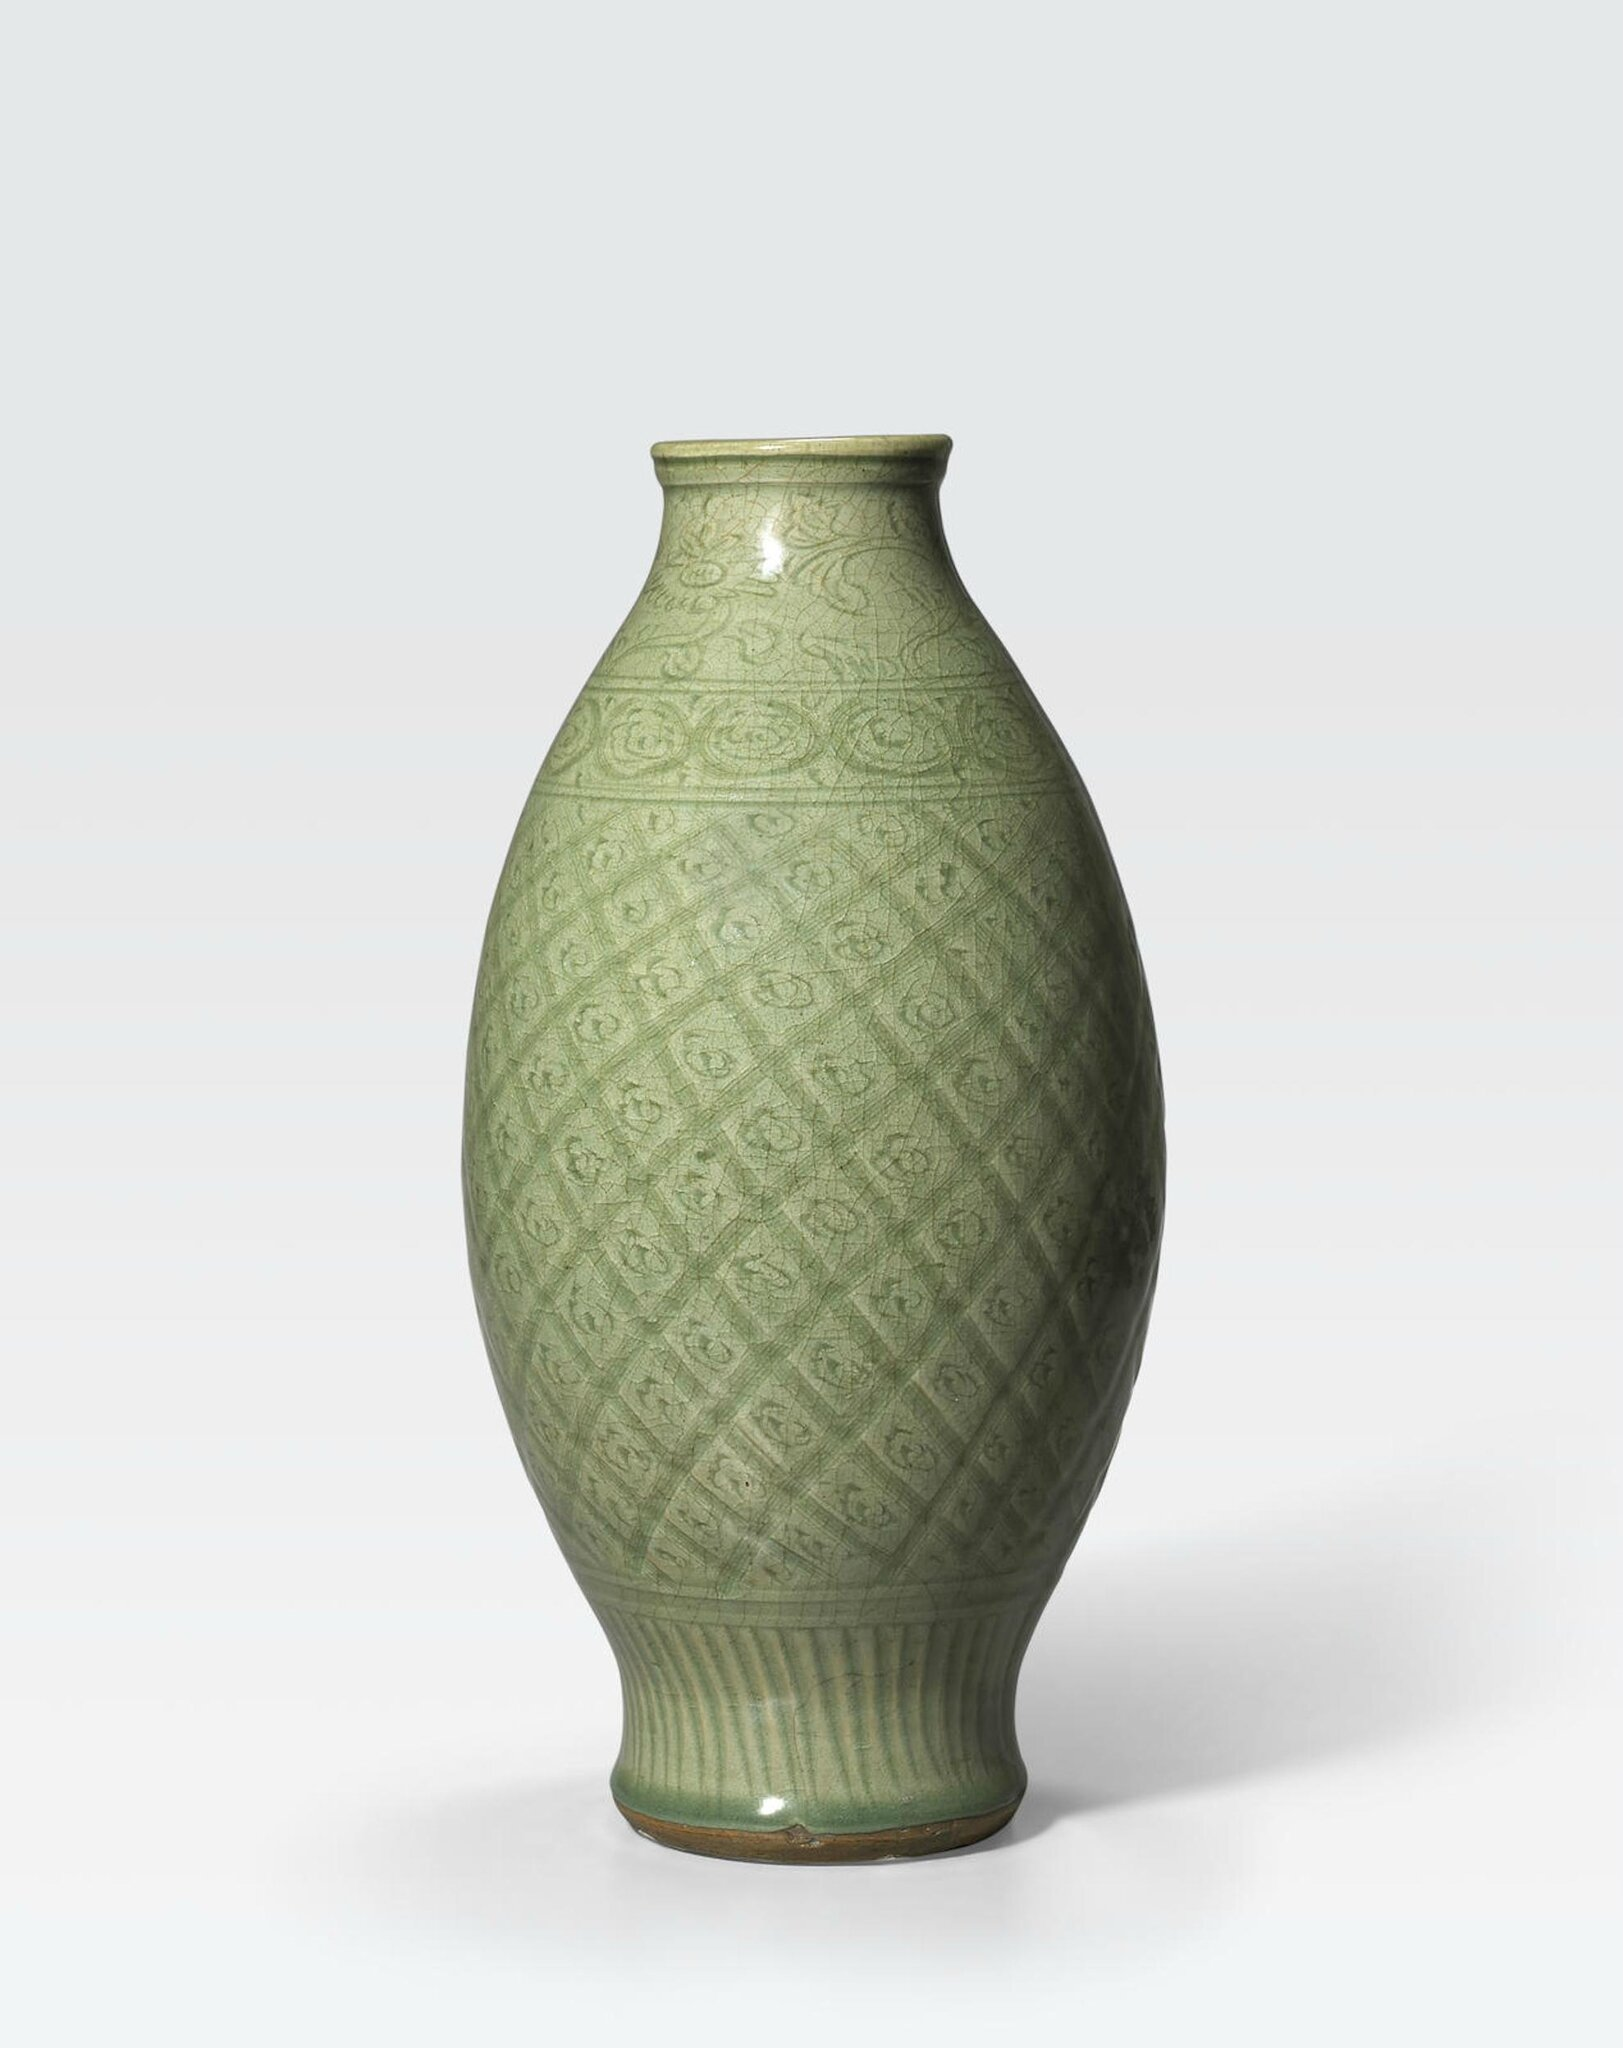 A Longquan celadon glazed ovoid vase, 15th-16th century